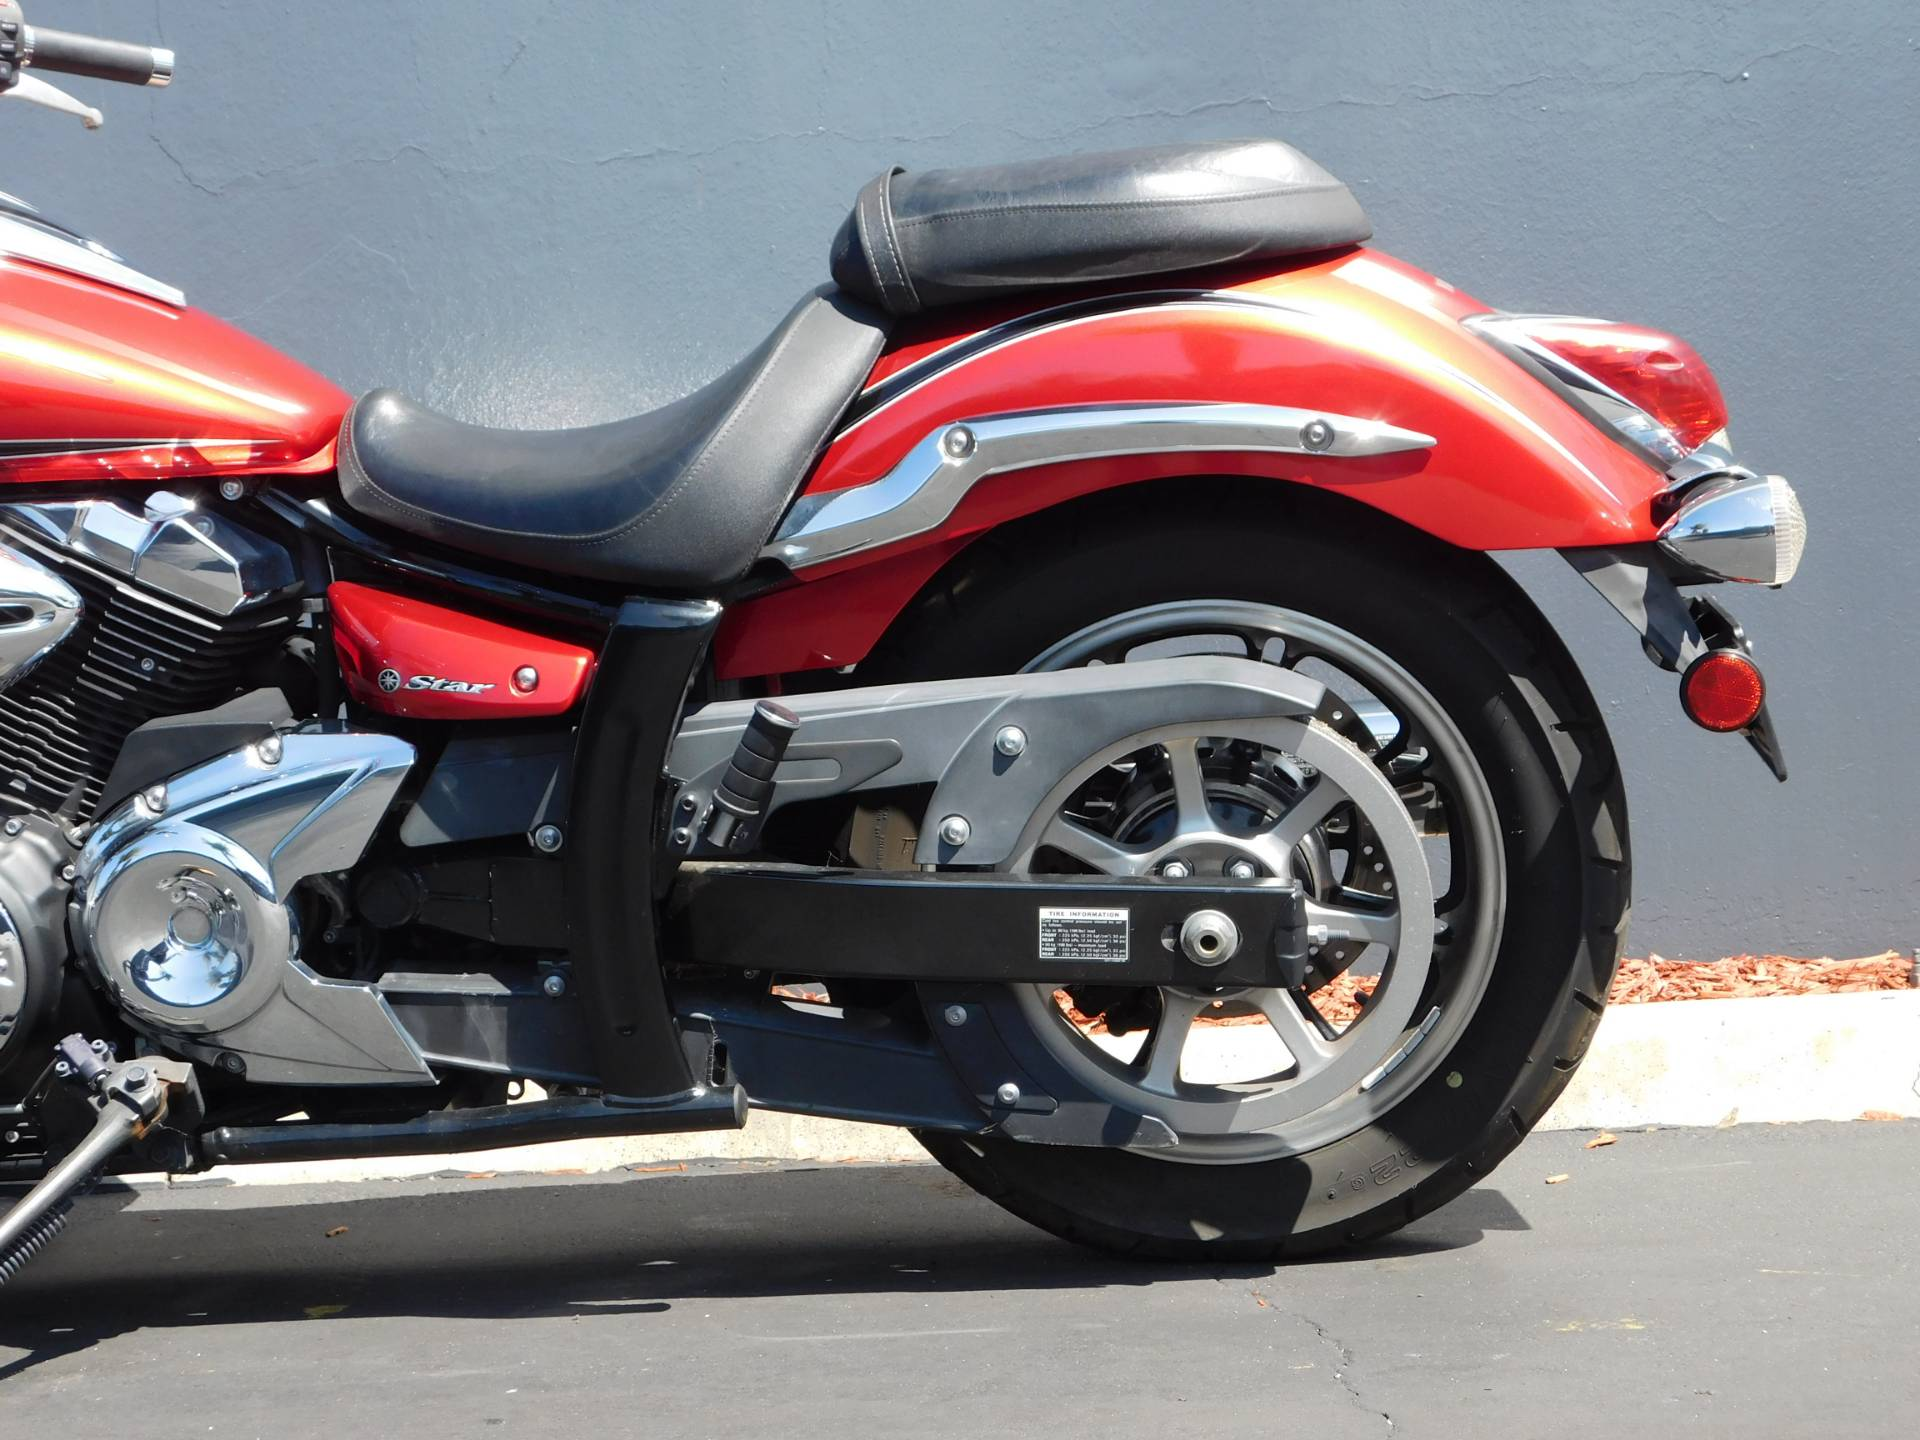 2012 Yamaha V Star 950 in Chula Vista, California - Photo 22